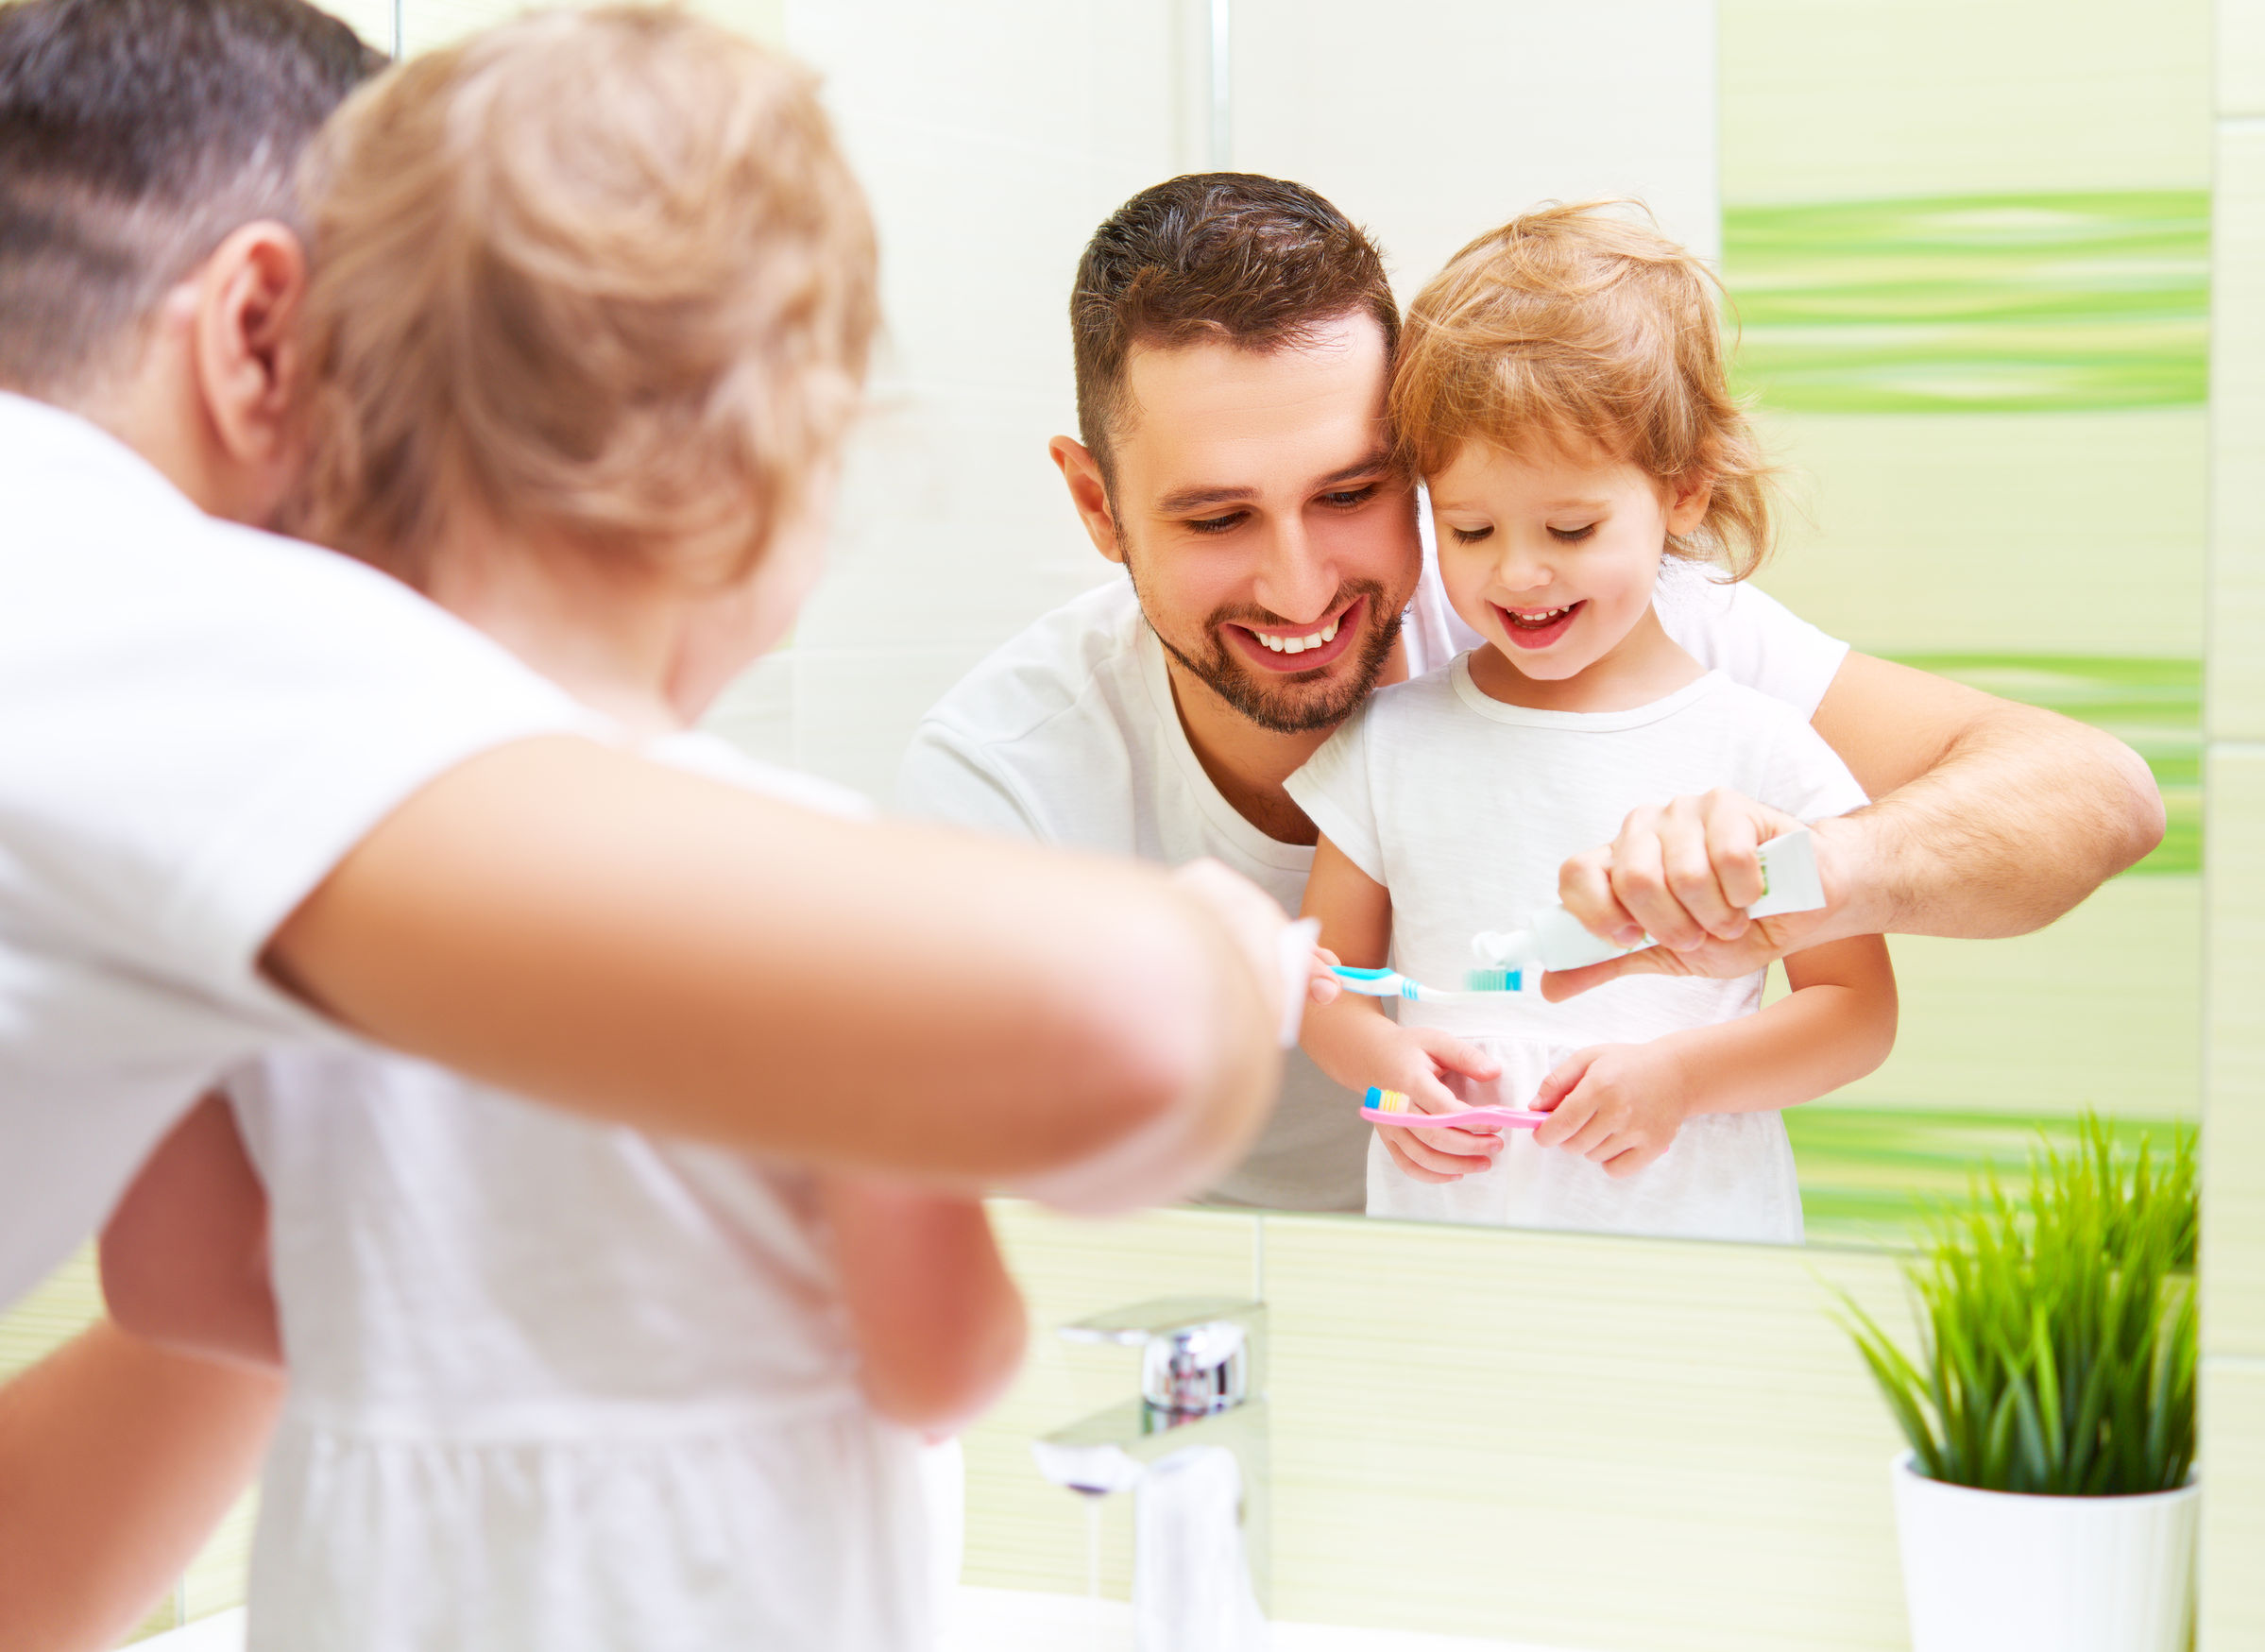 happy family father and daughter child girl brushing her teeth in the bathroom toothbrushes